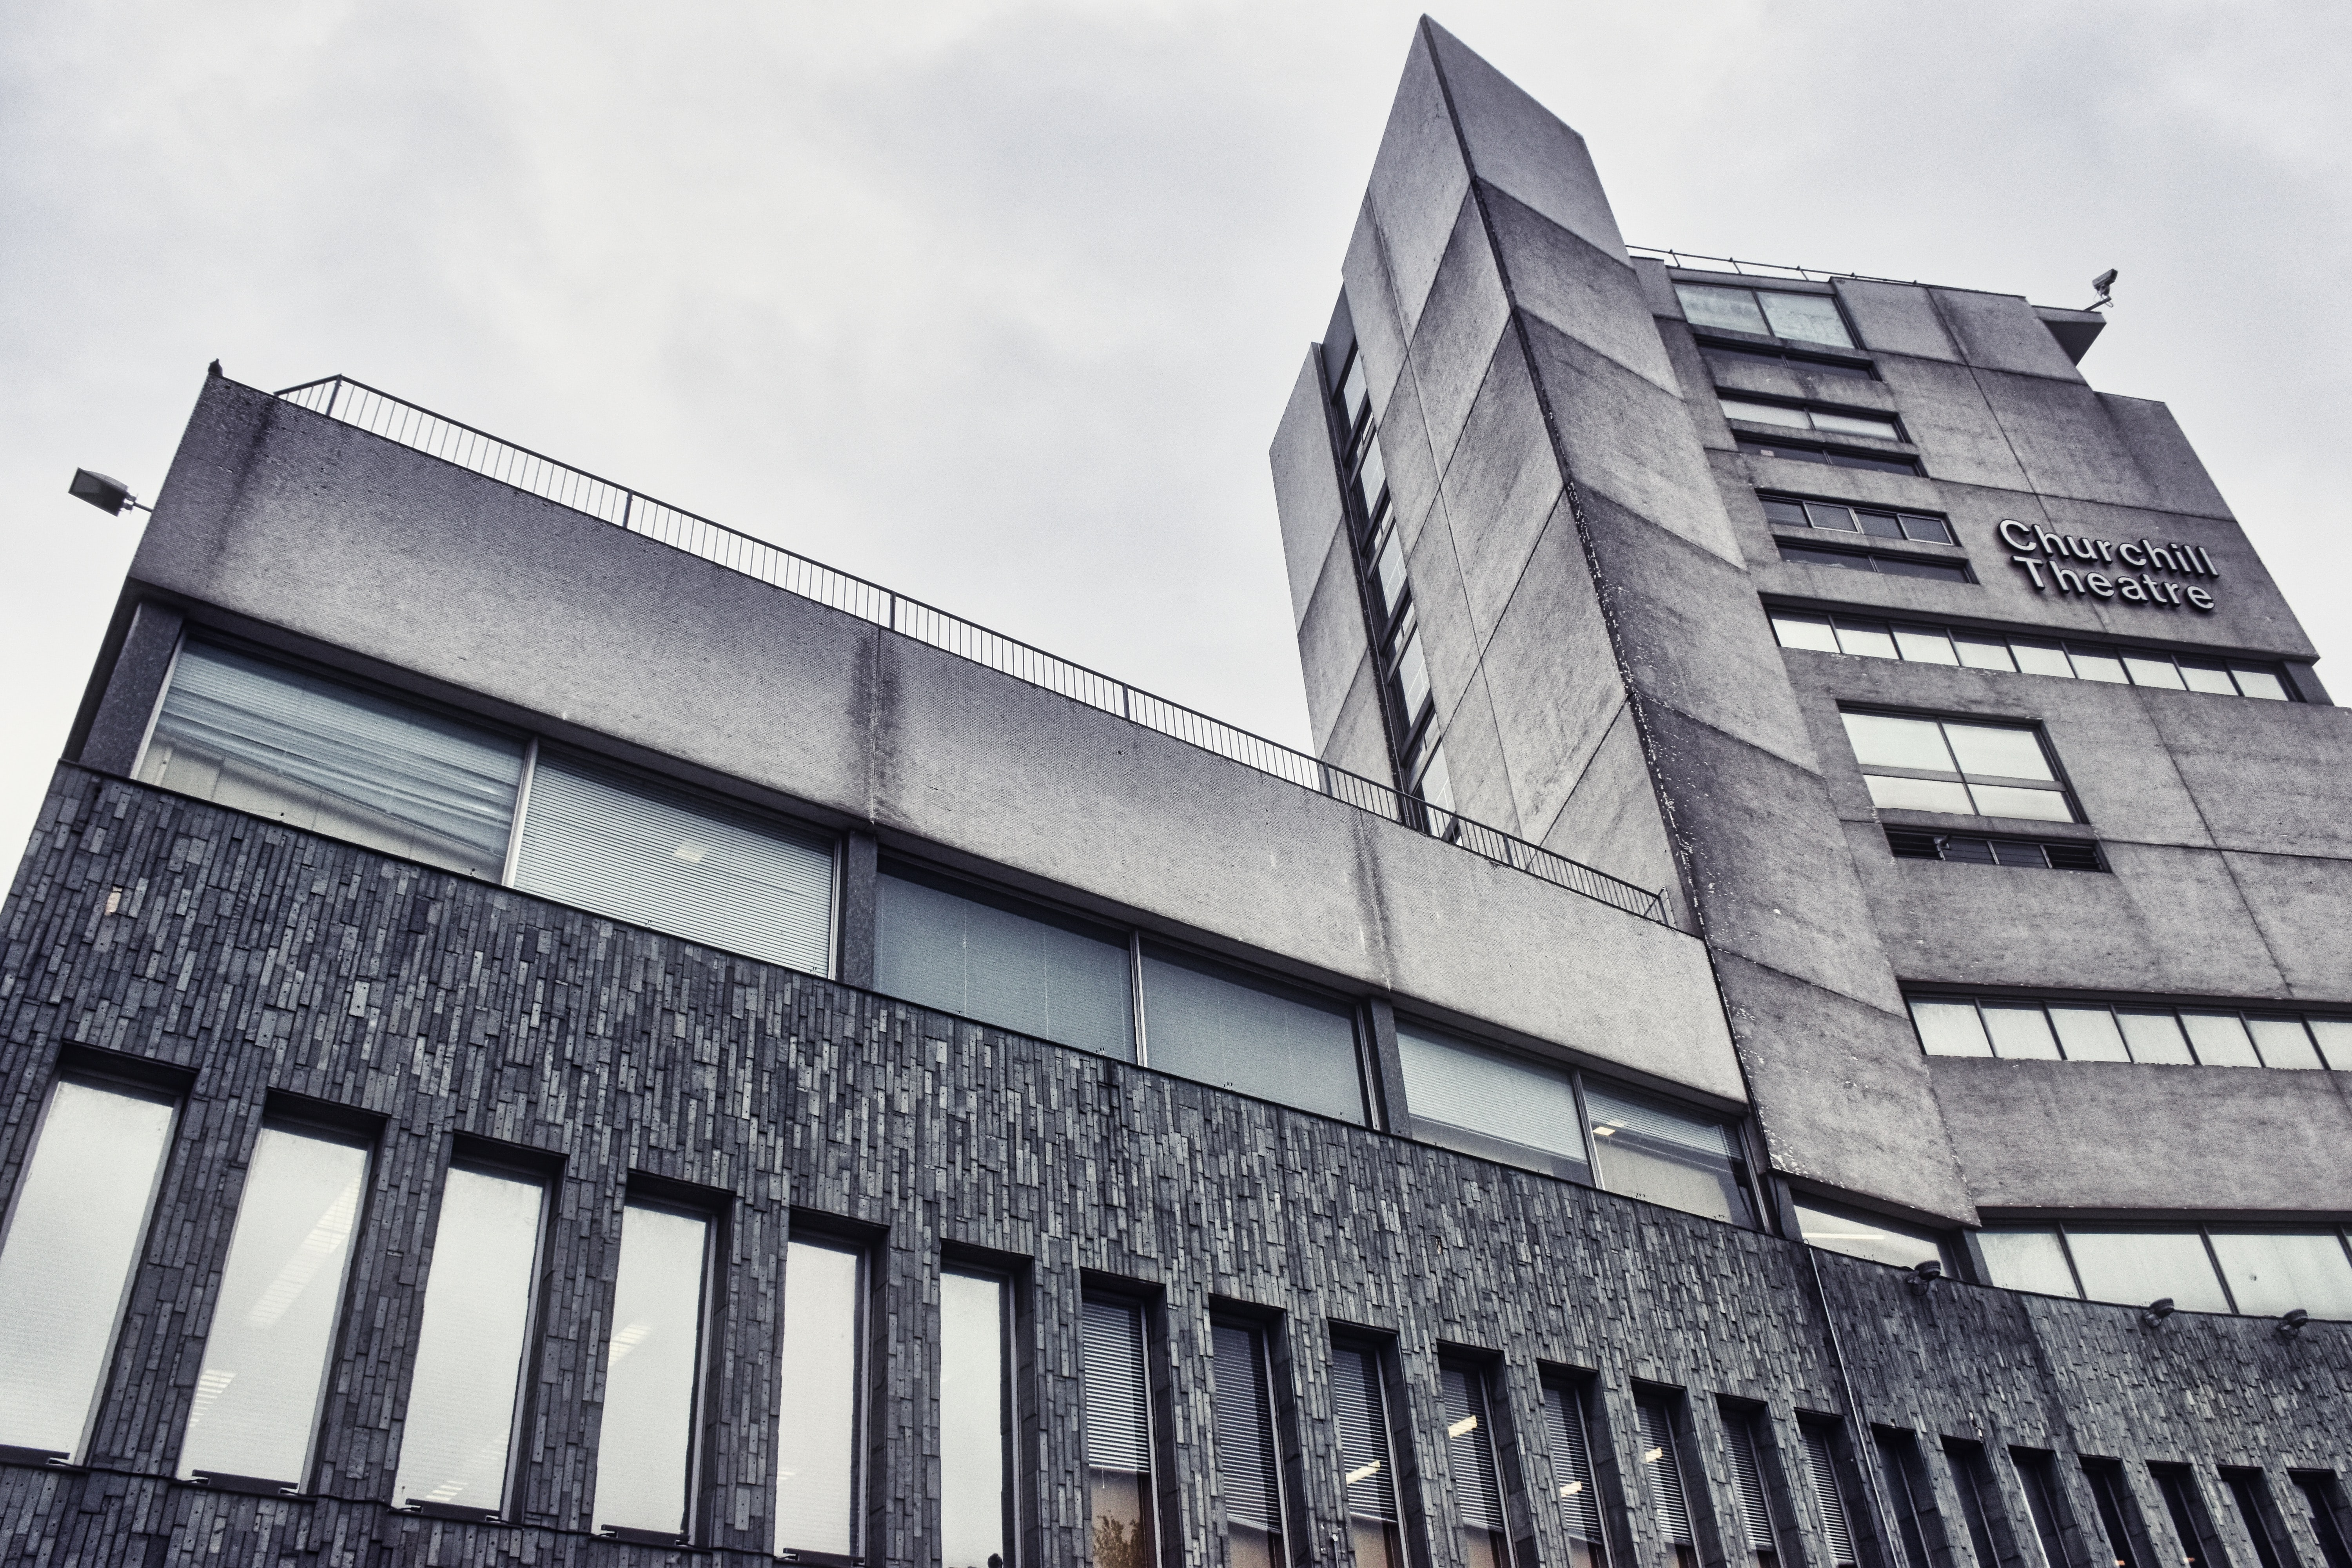 low angle photography of gray concrete building during daytime